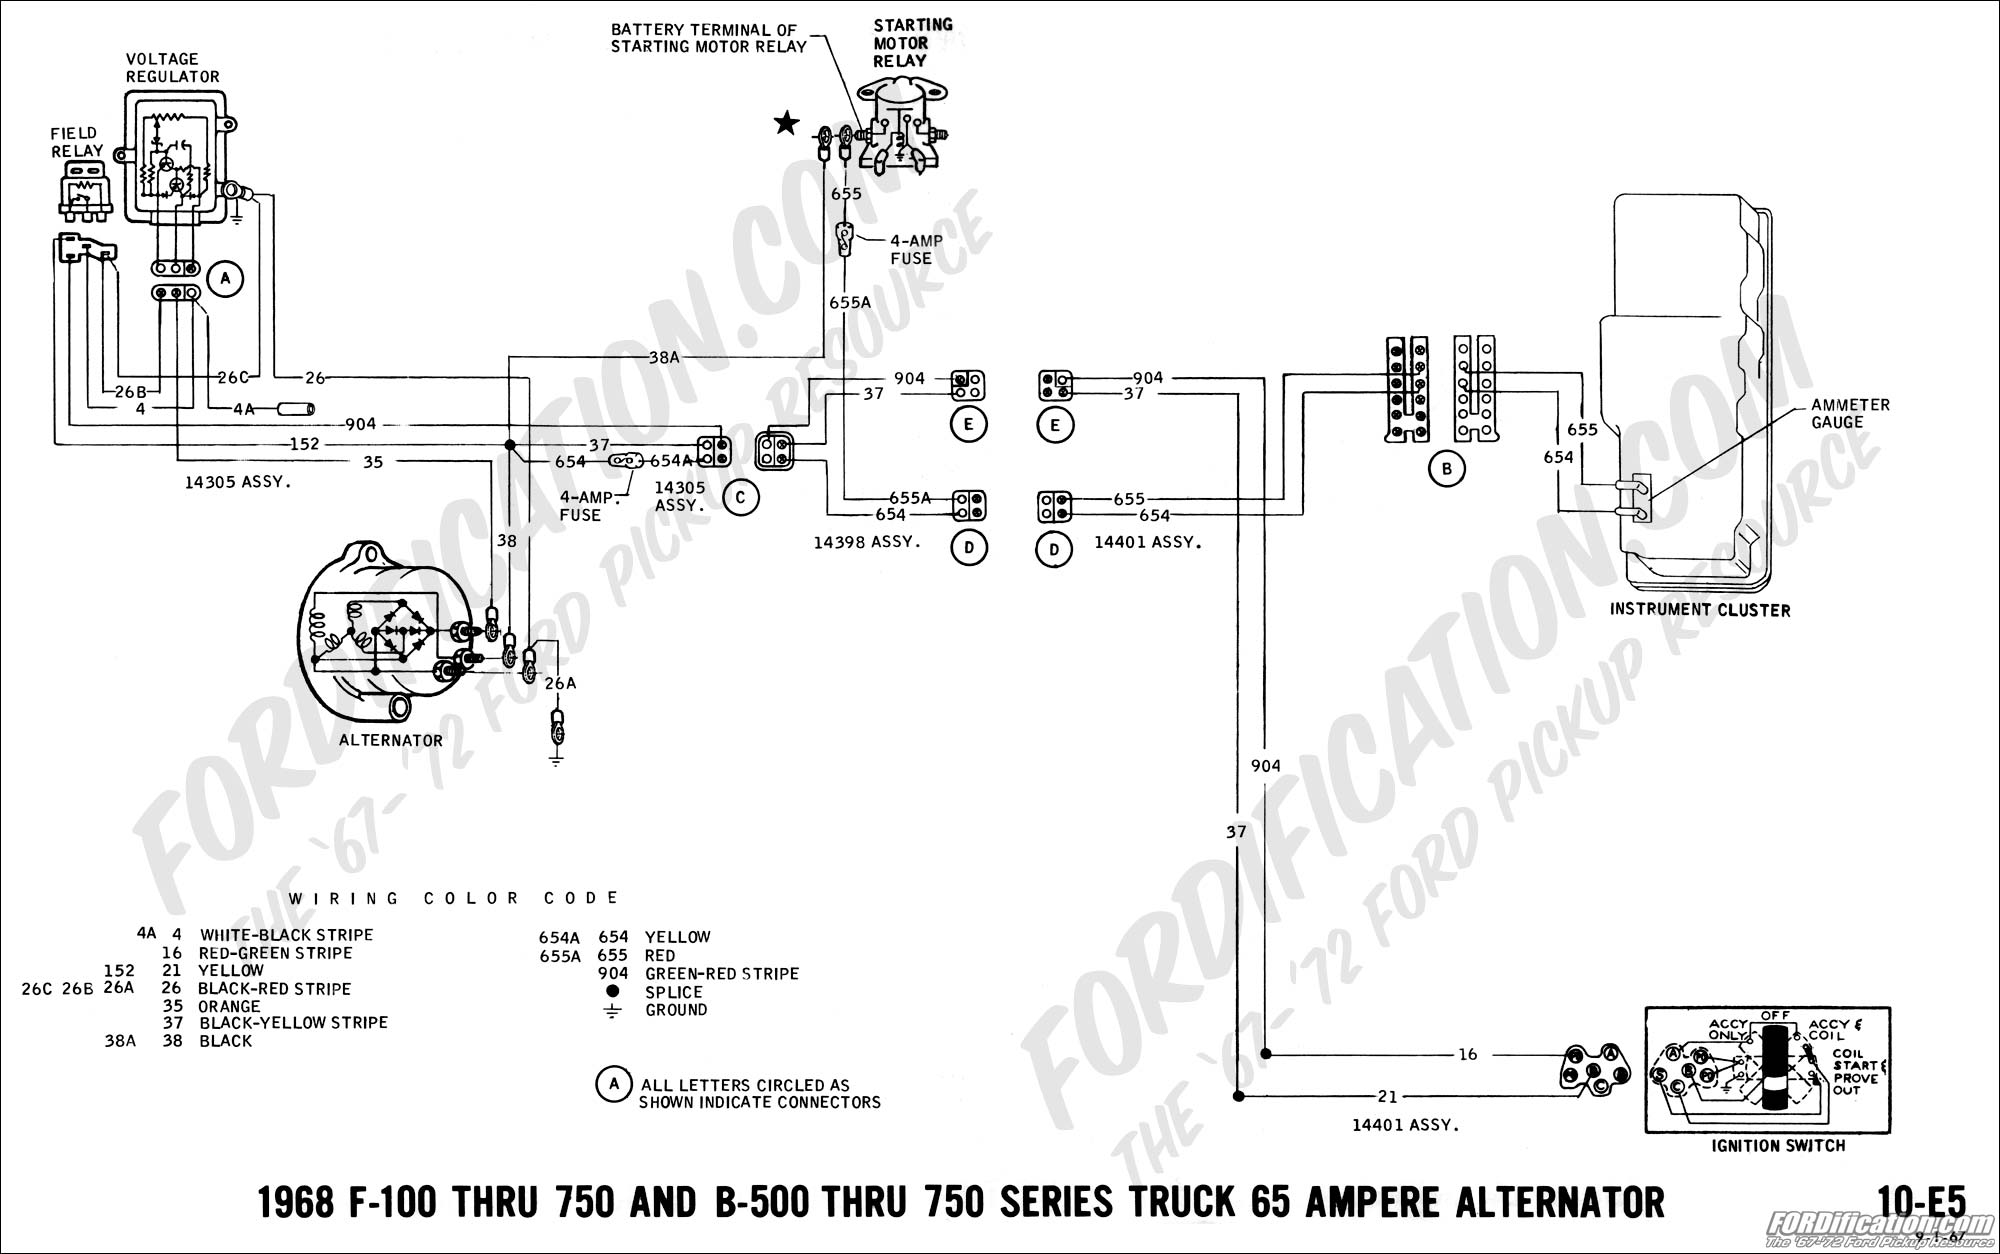 68 07 ford truck technical drawings and schematics section h wiring Basic Chevy Alternator Wiring Diagram at reclaimingppi.co